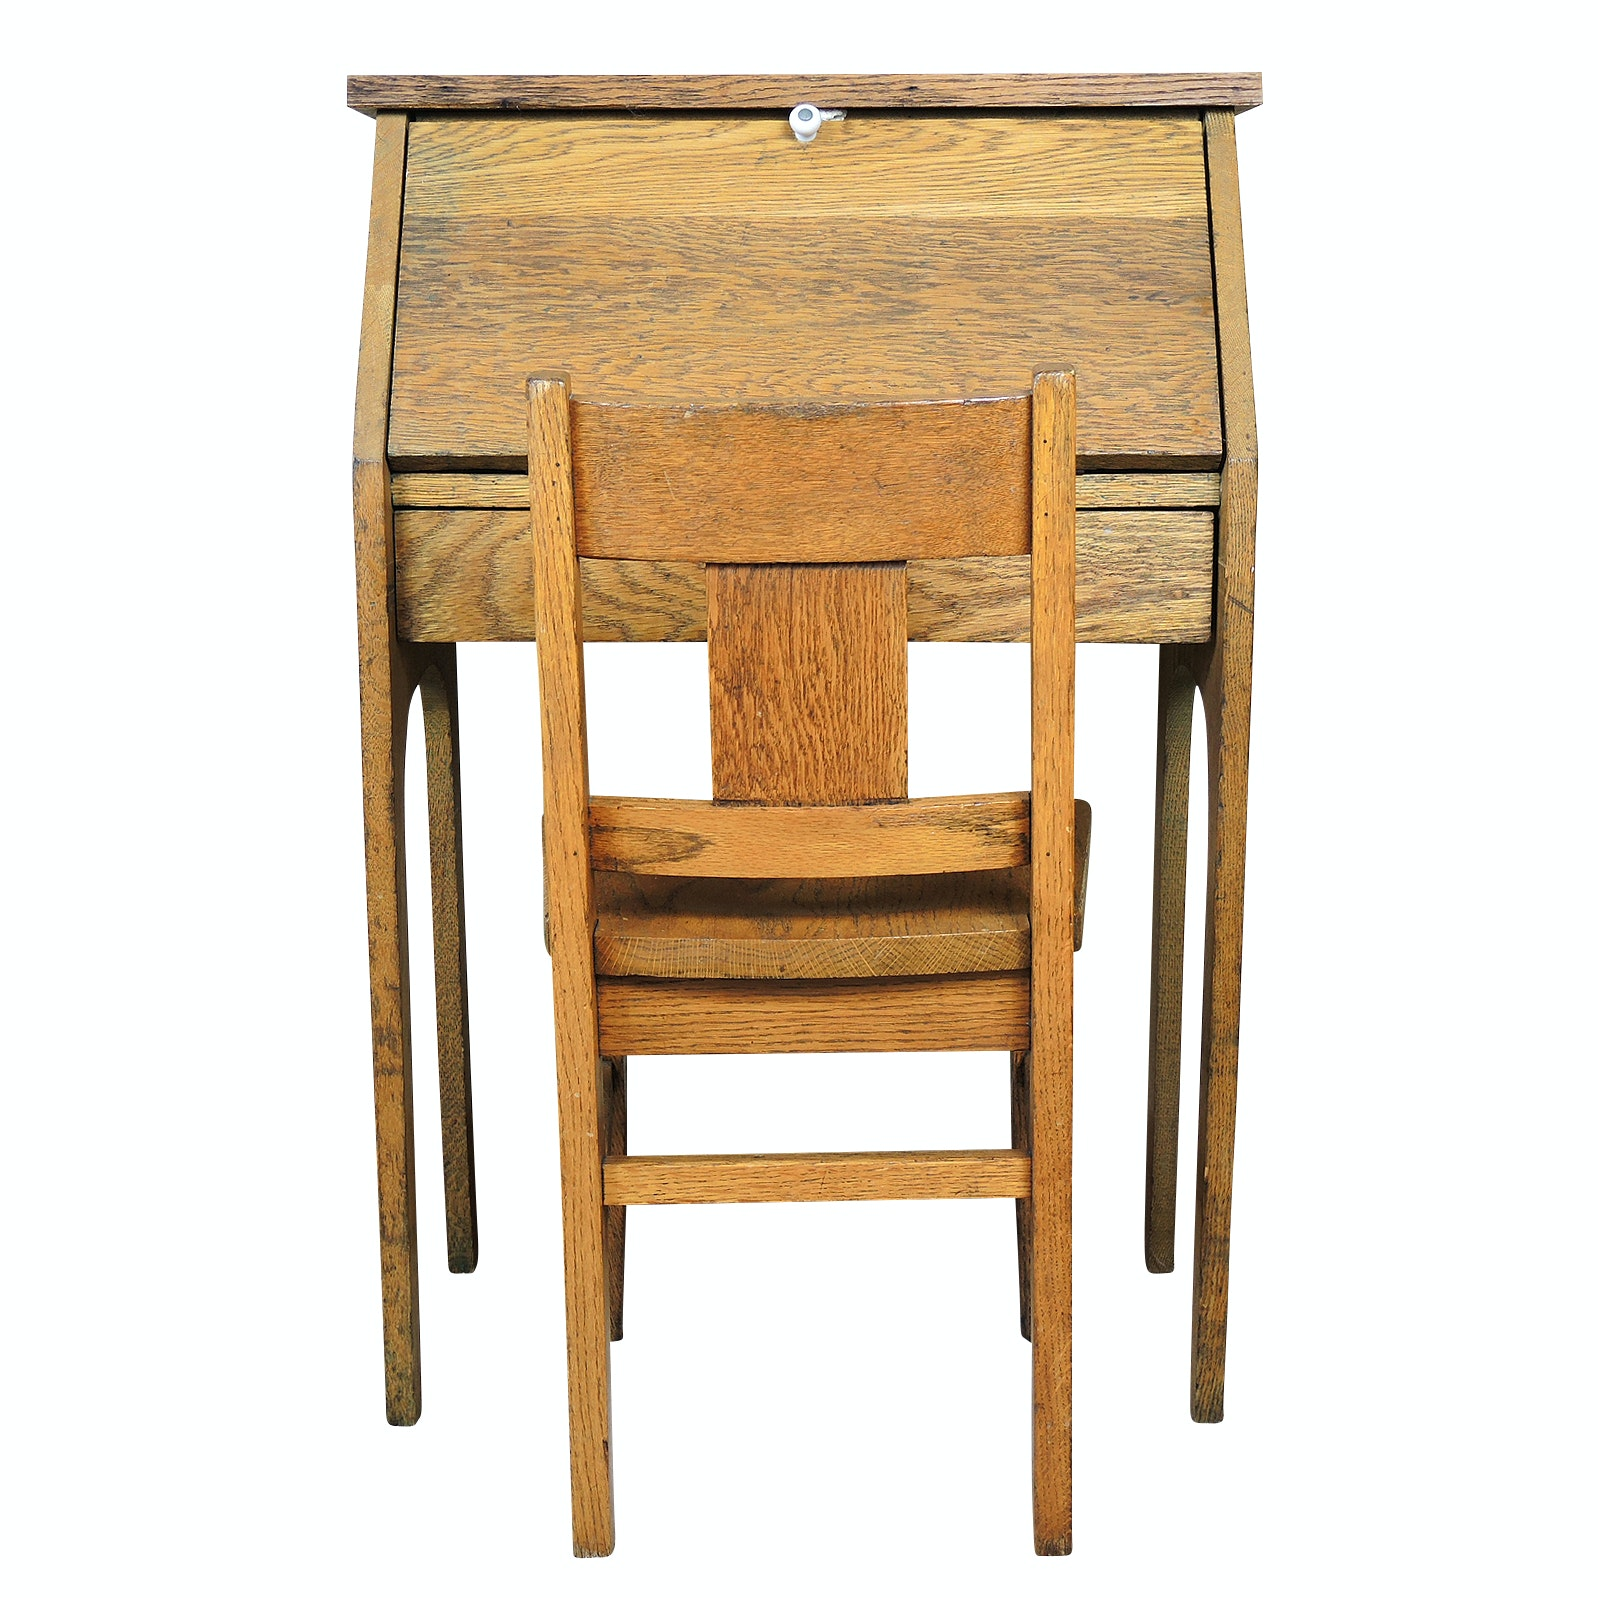 Child's Oak Slant Top Writing Desk and Chair